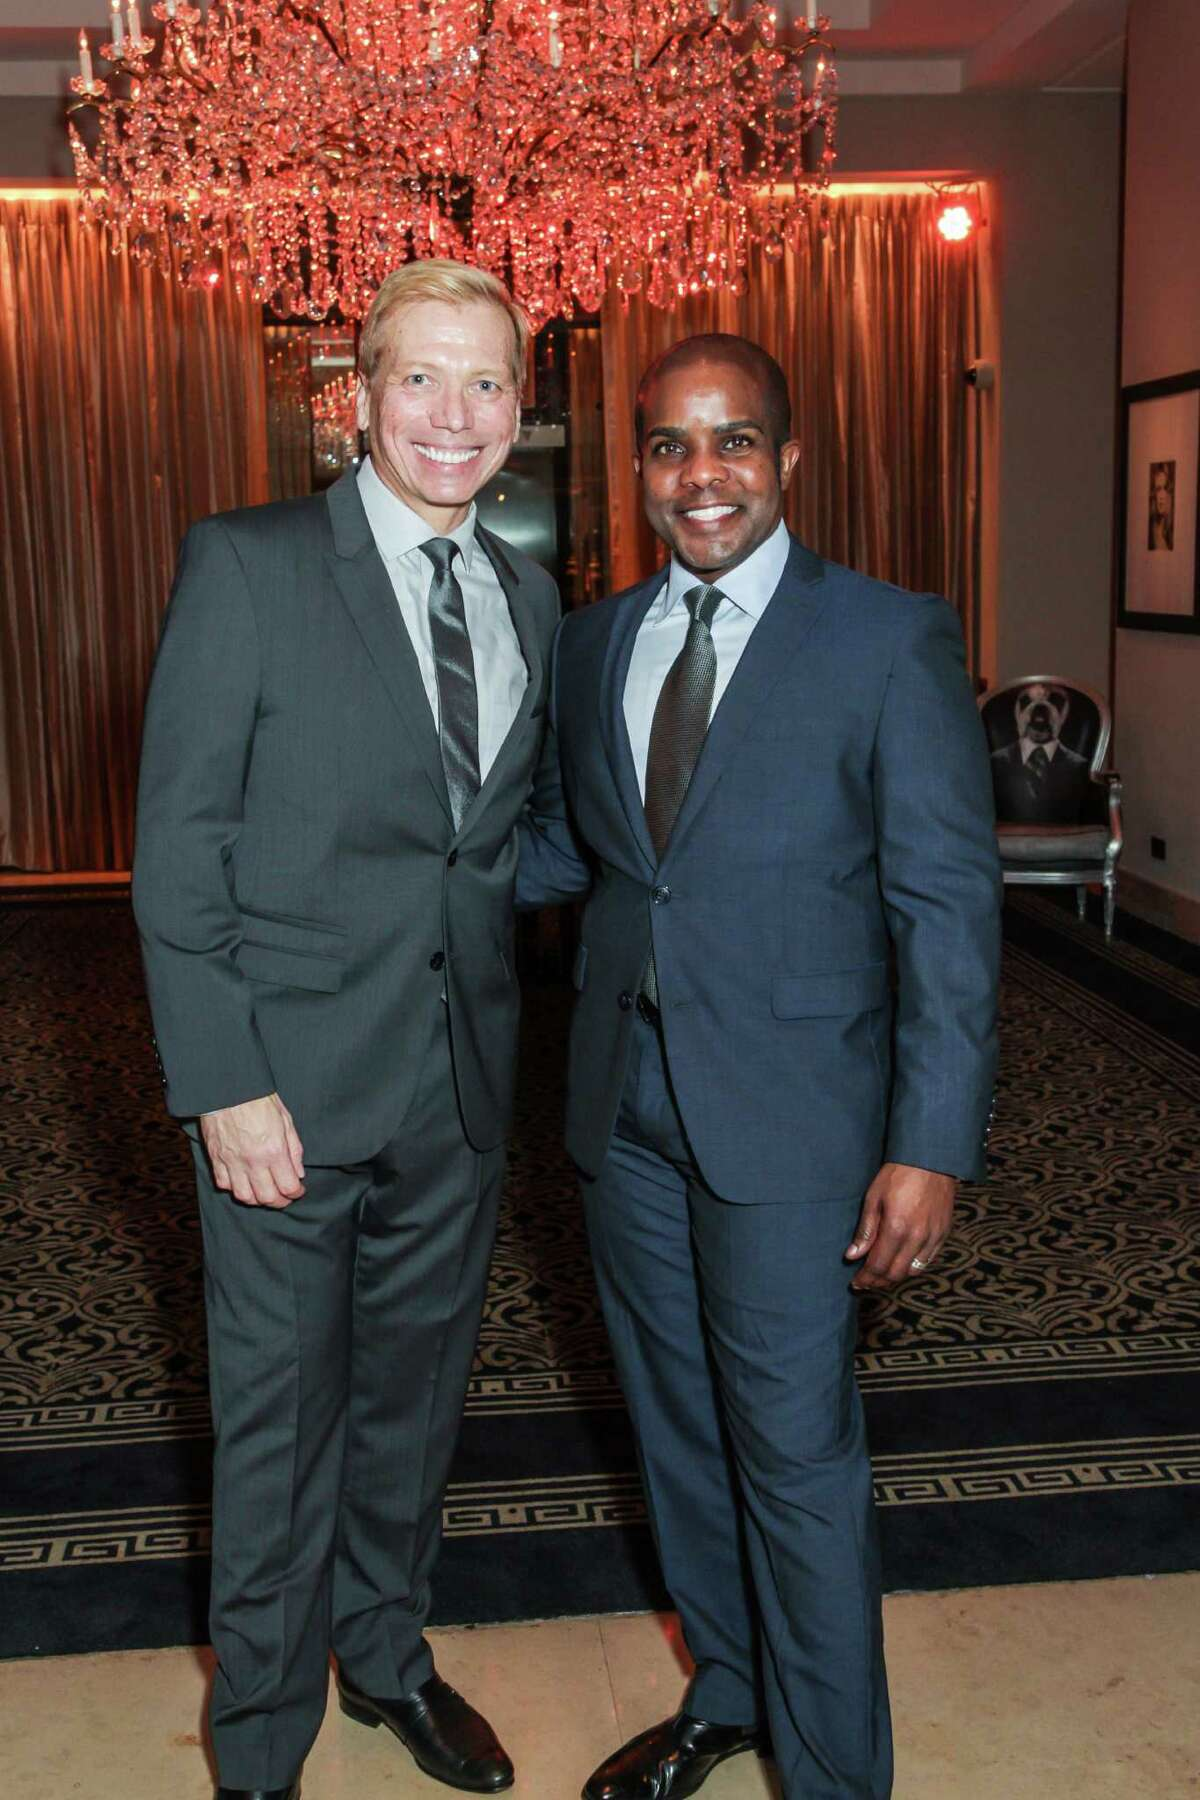 SOCIETY: Jonathon Glus and Alton LaDay at the Houston Arts Alliance's Intimate Evening with Lee Daniels at the Hotel ZaZa.